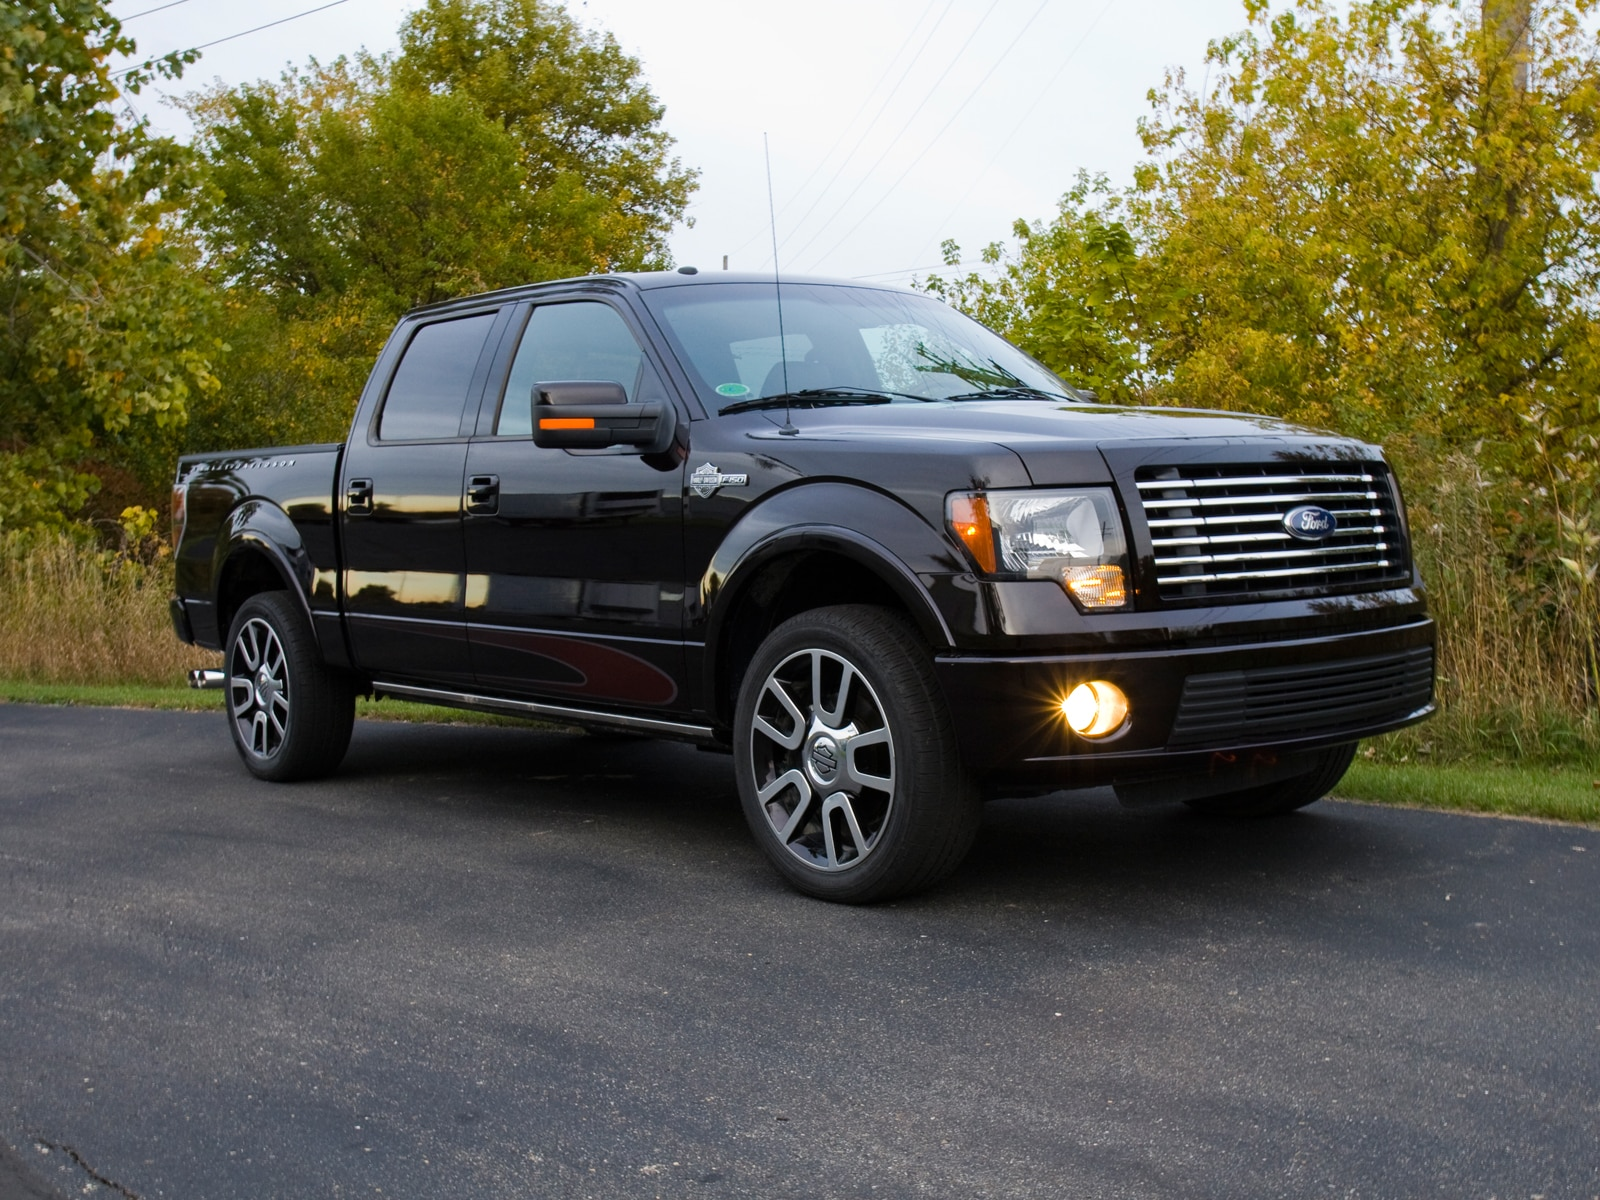 0911 05 Z 2010 Ford F 150 Harley Davidson Edition Front Three Quarter View